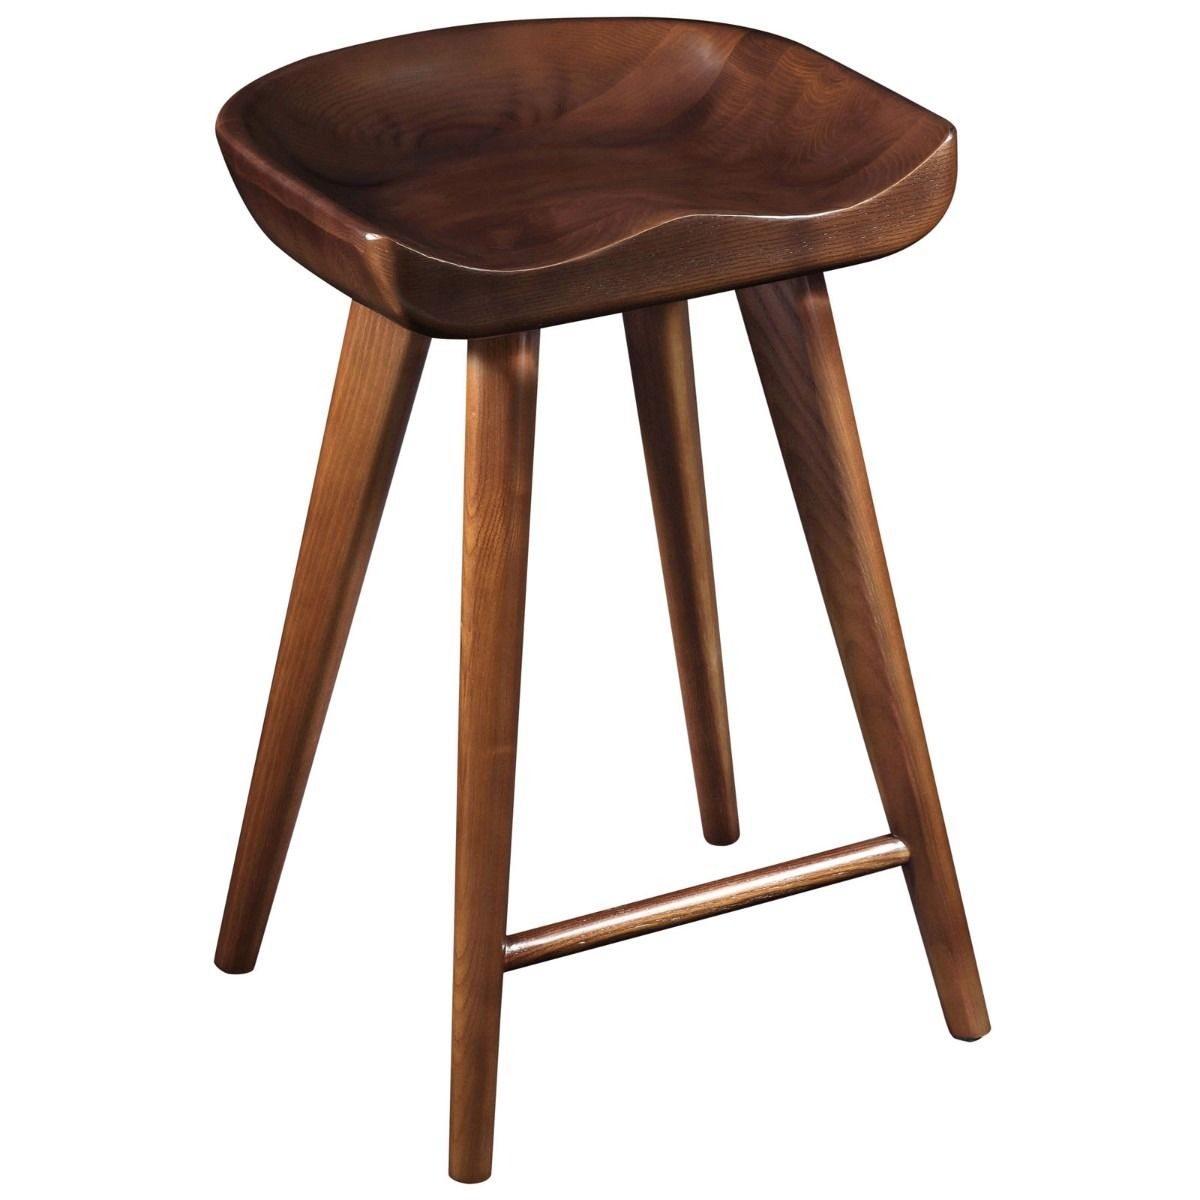 banco para bar stool de madera solida de nogal